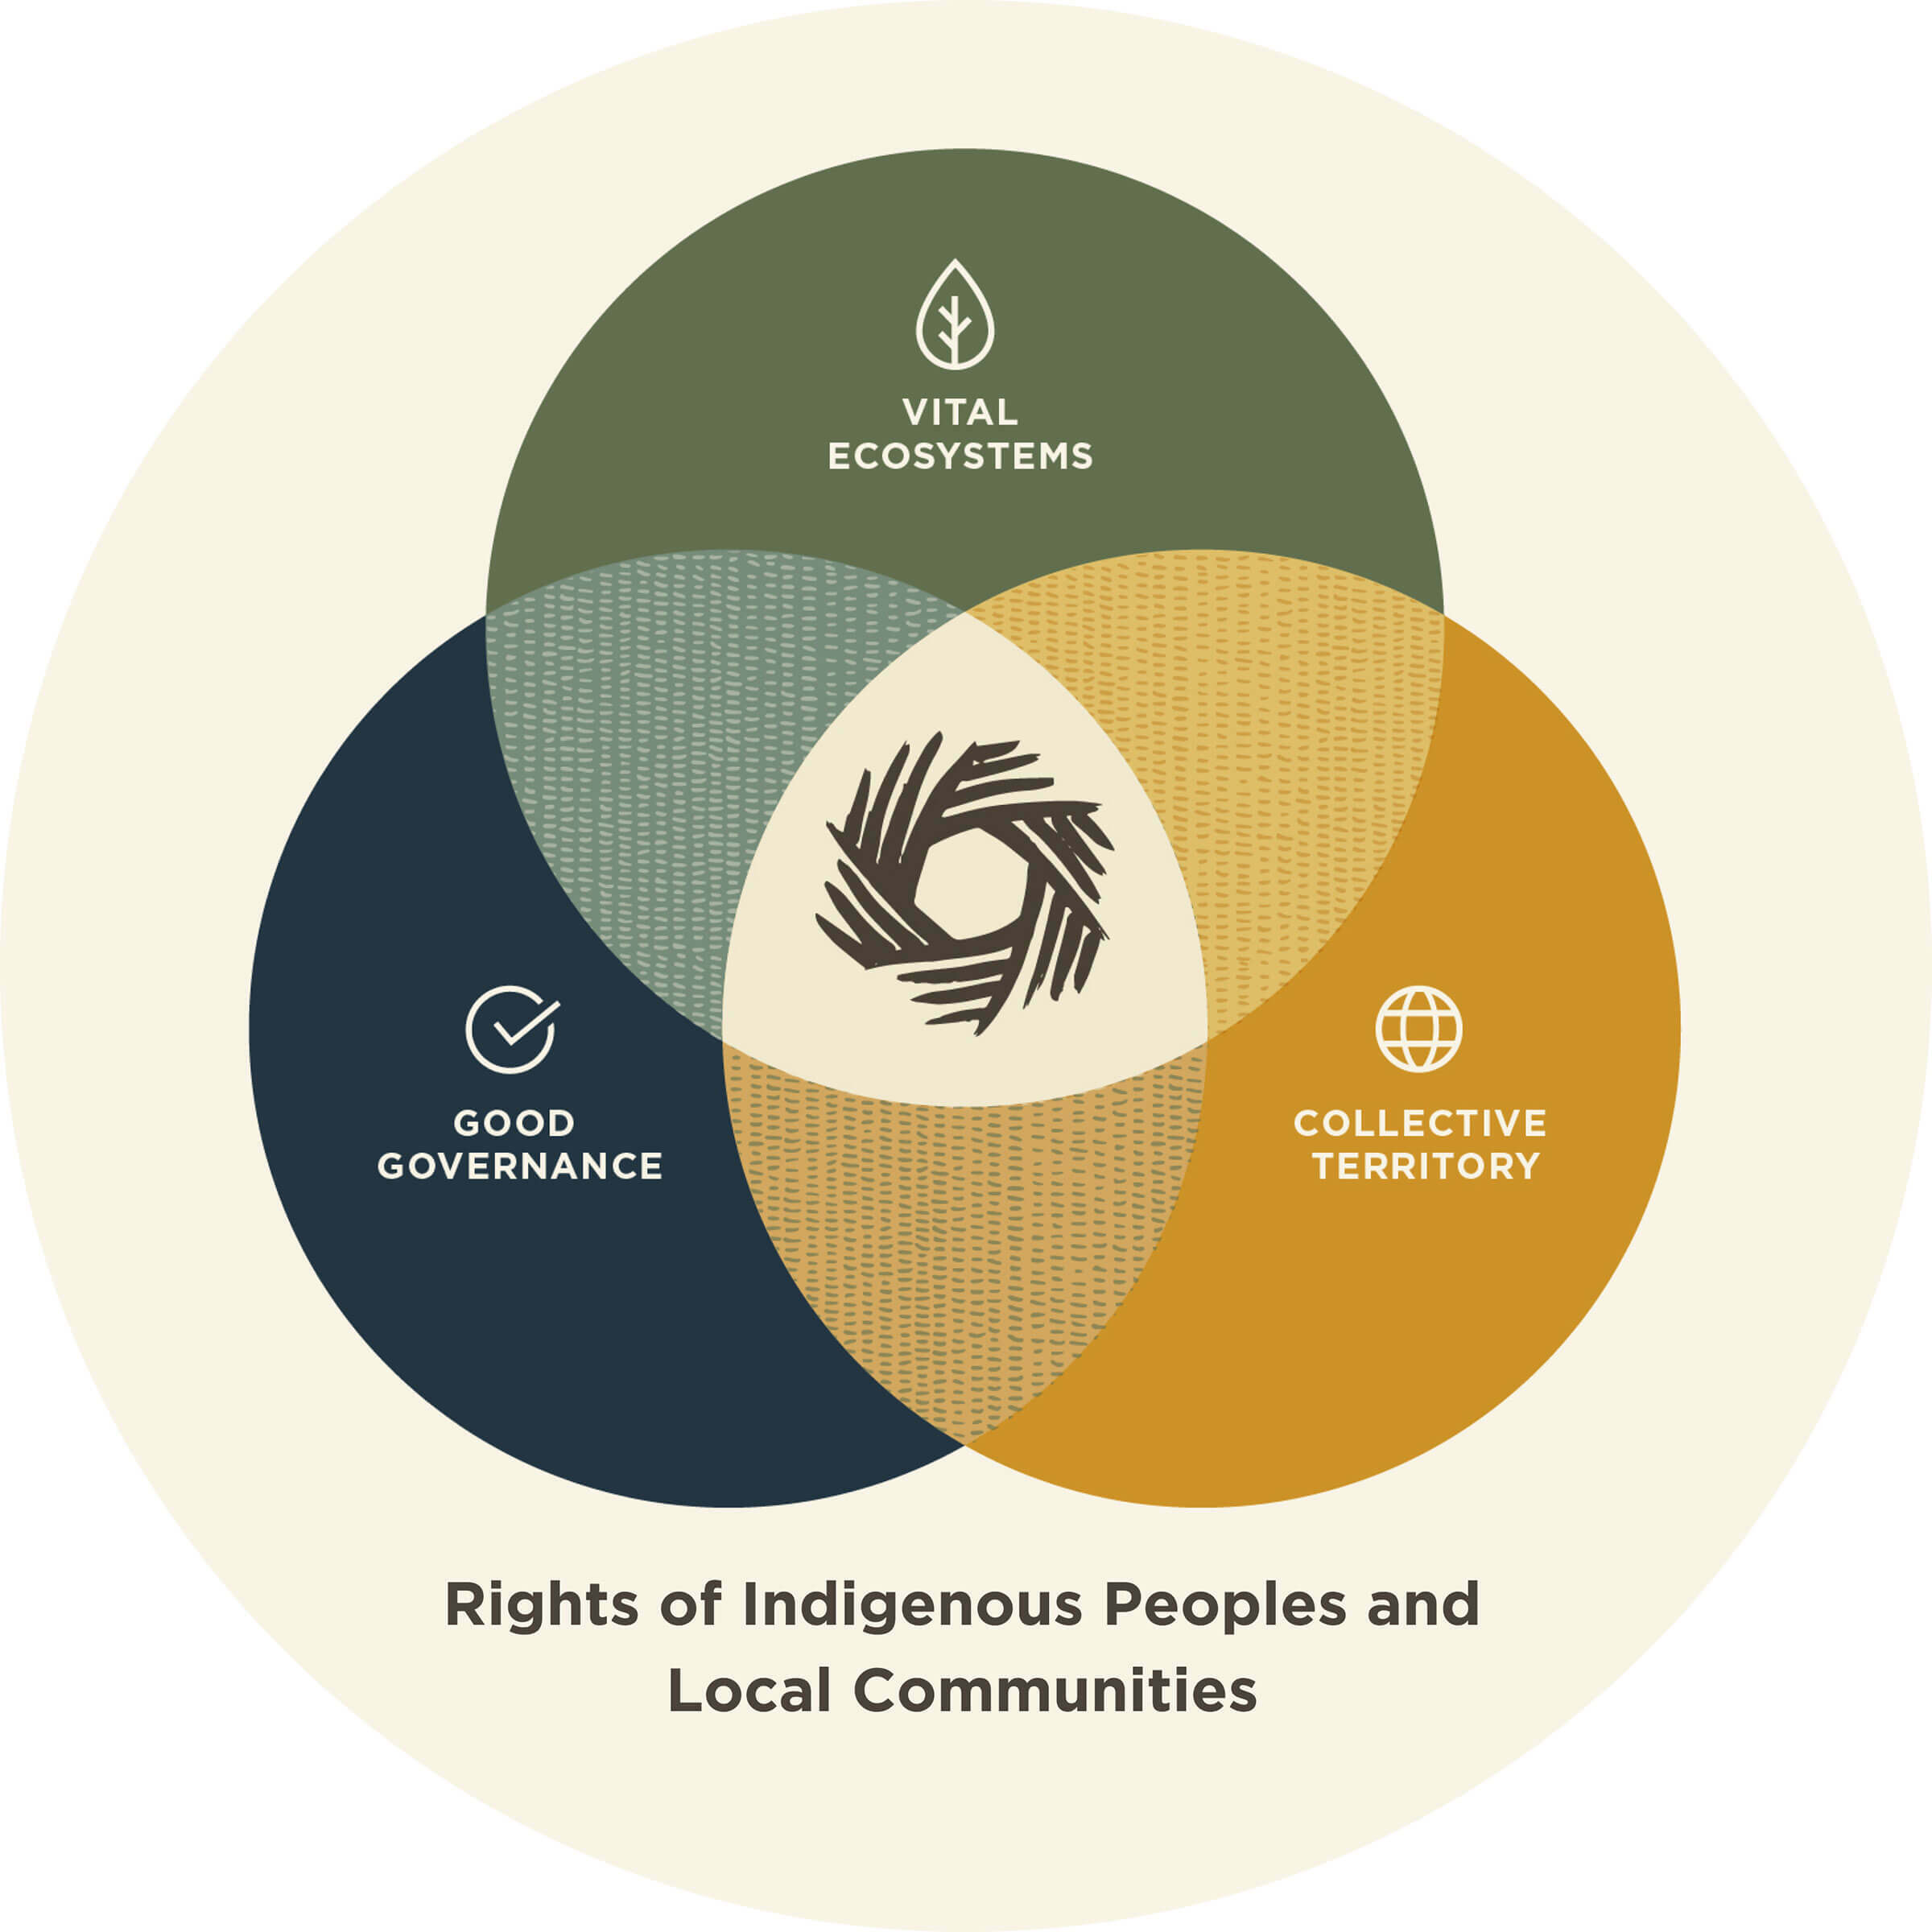 The rights of indigenous peoples and local communities include vital eco systems, good governance, and collective territory.